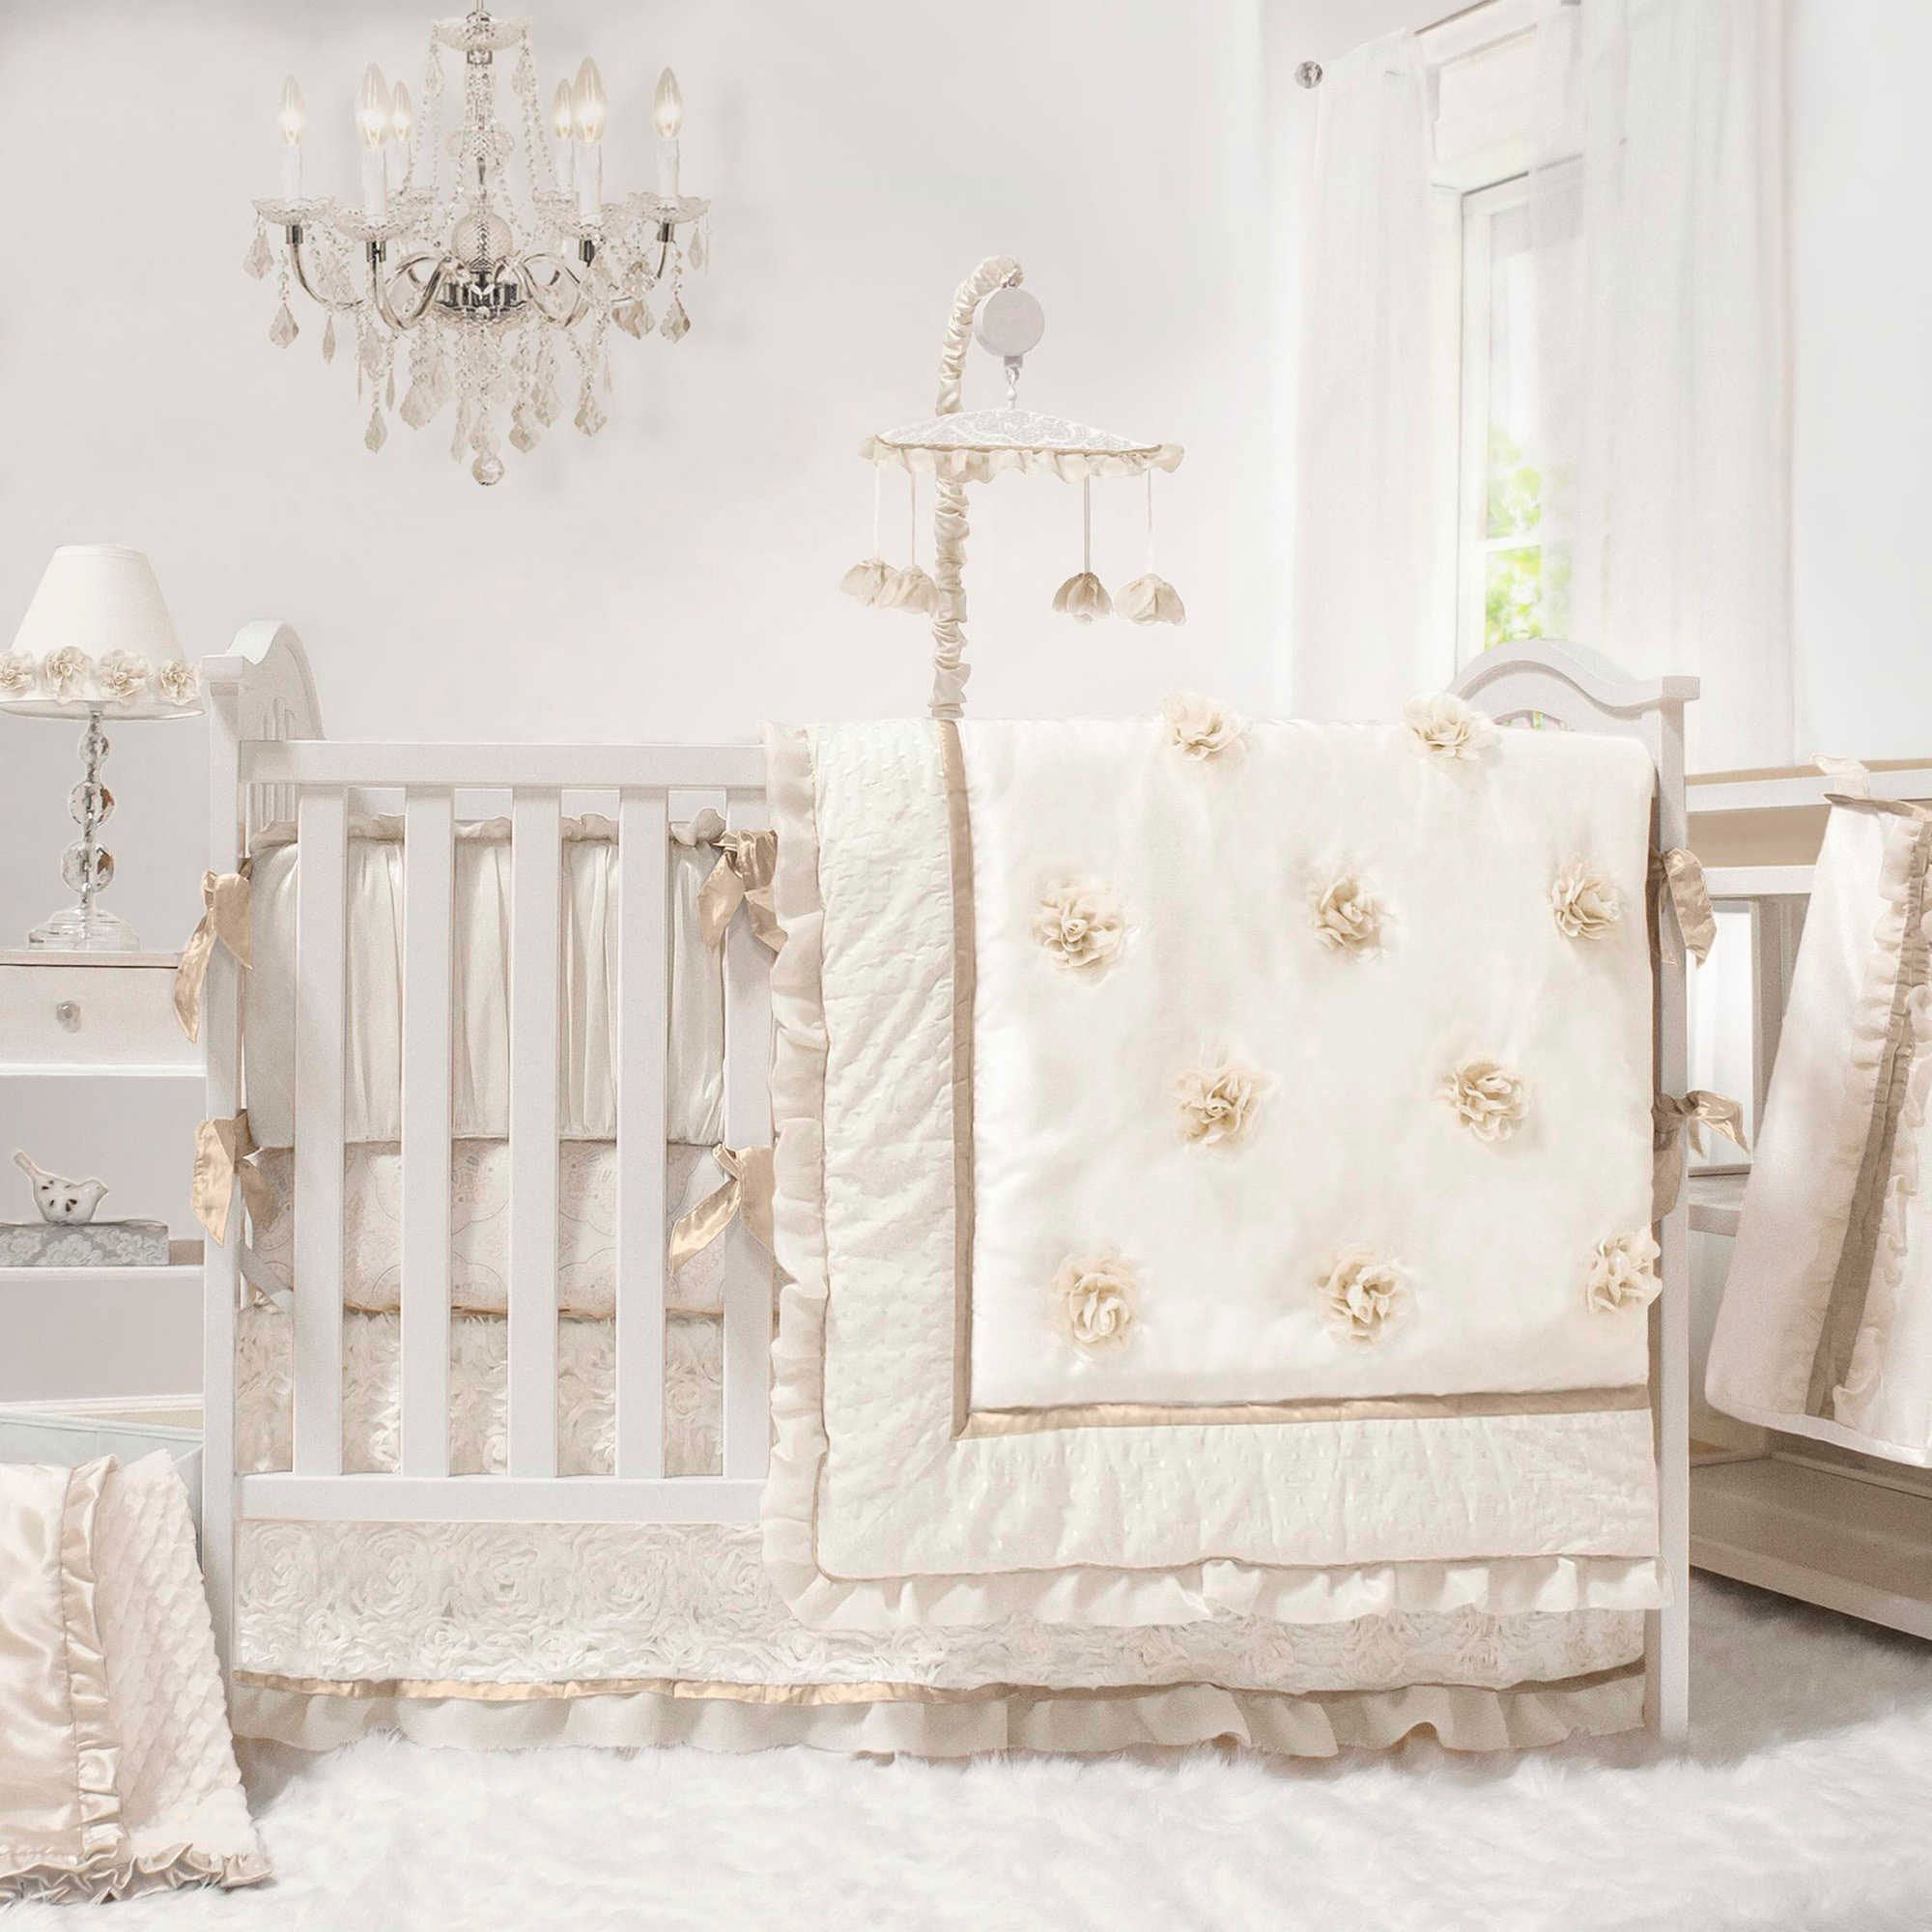 piece baby sheet fitted and mobile crib zig skirt the quilt dots pink set with ruffle ip peanut bedding zag polka gold trim shell dust cotton